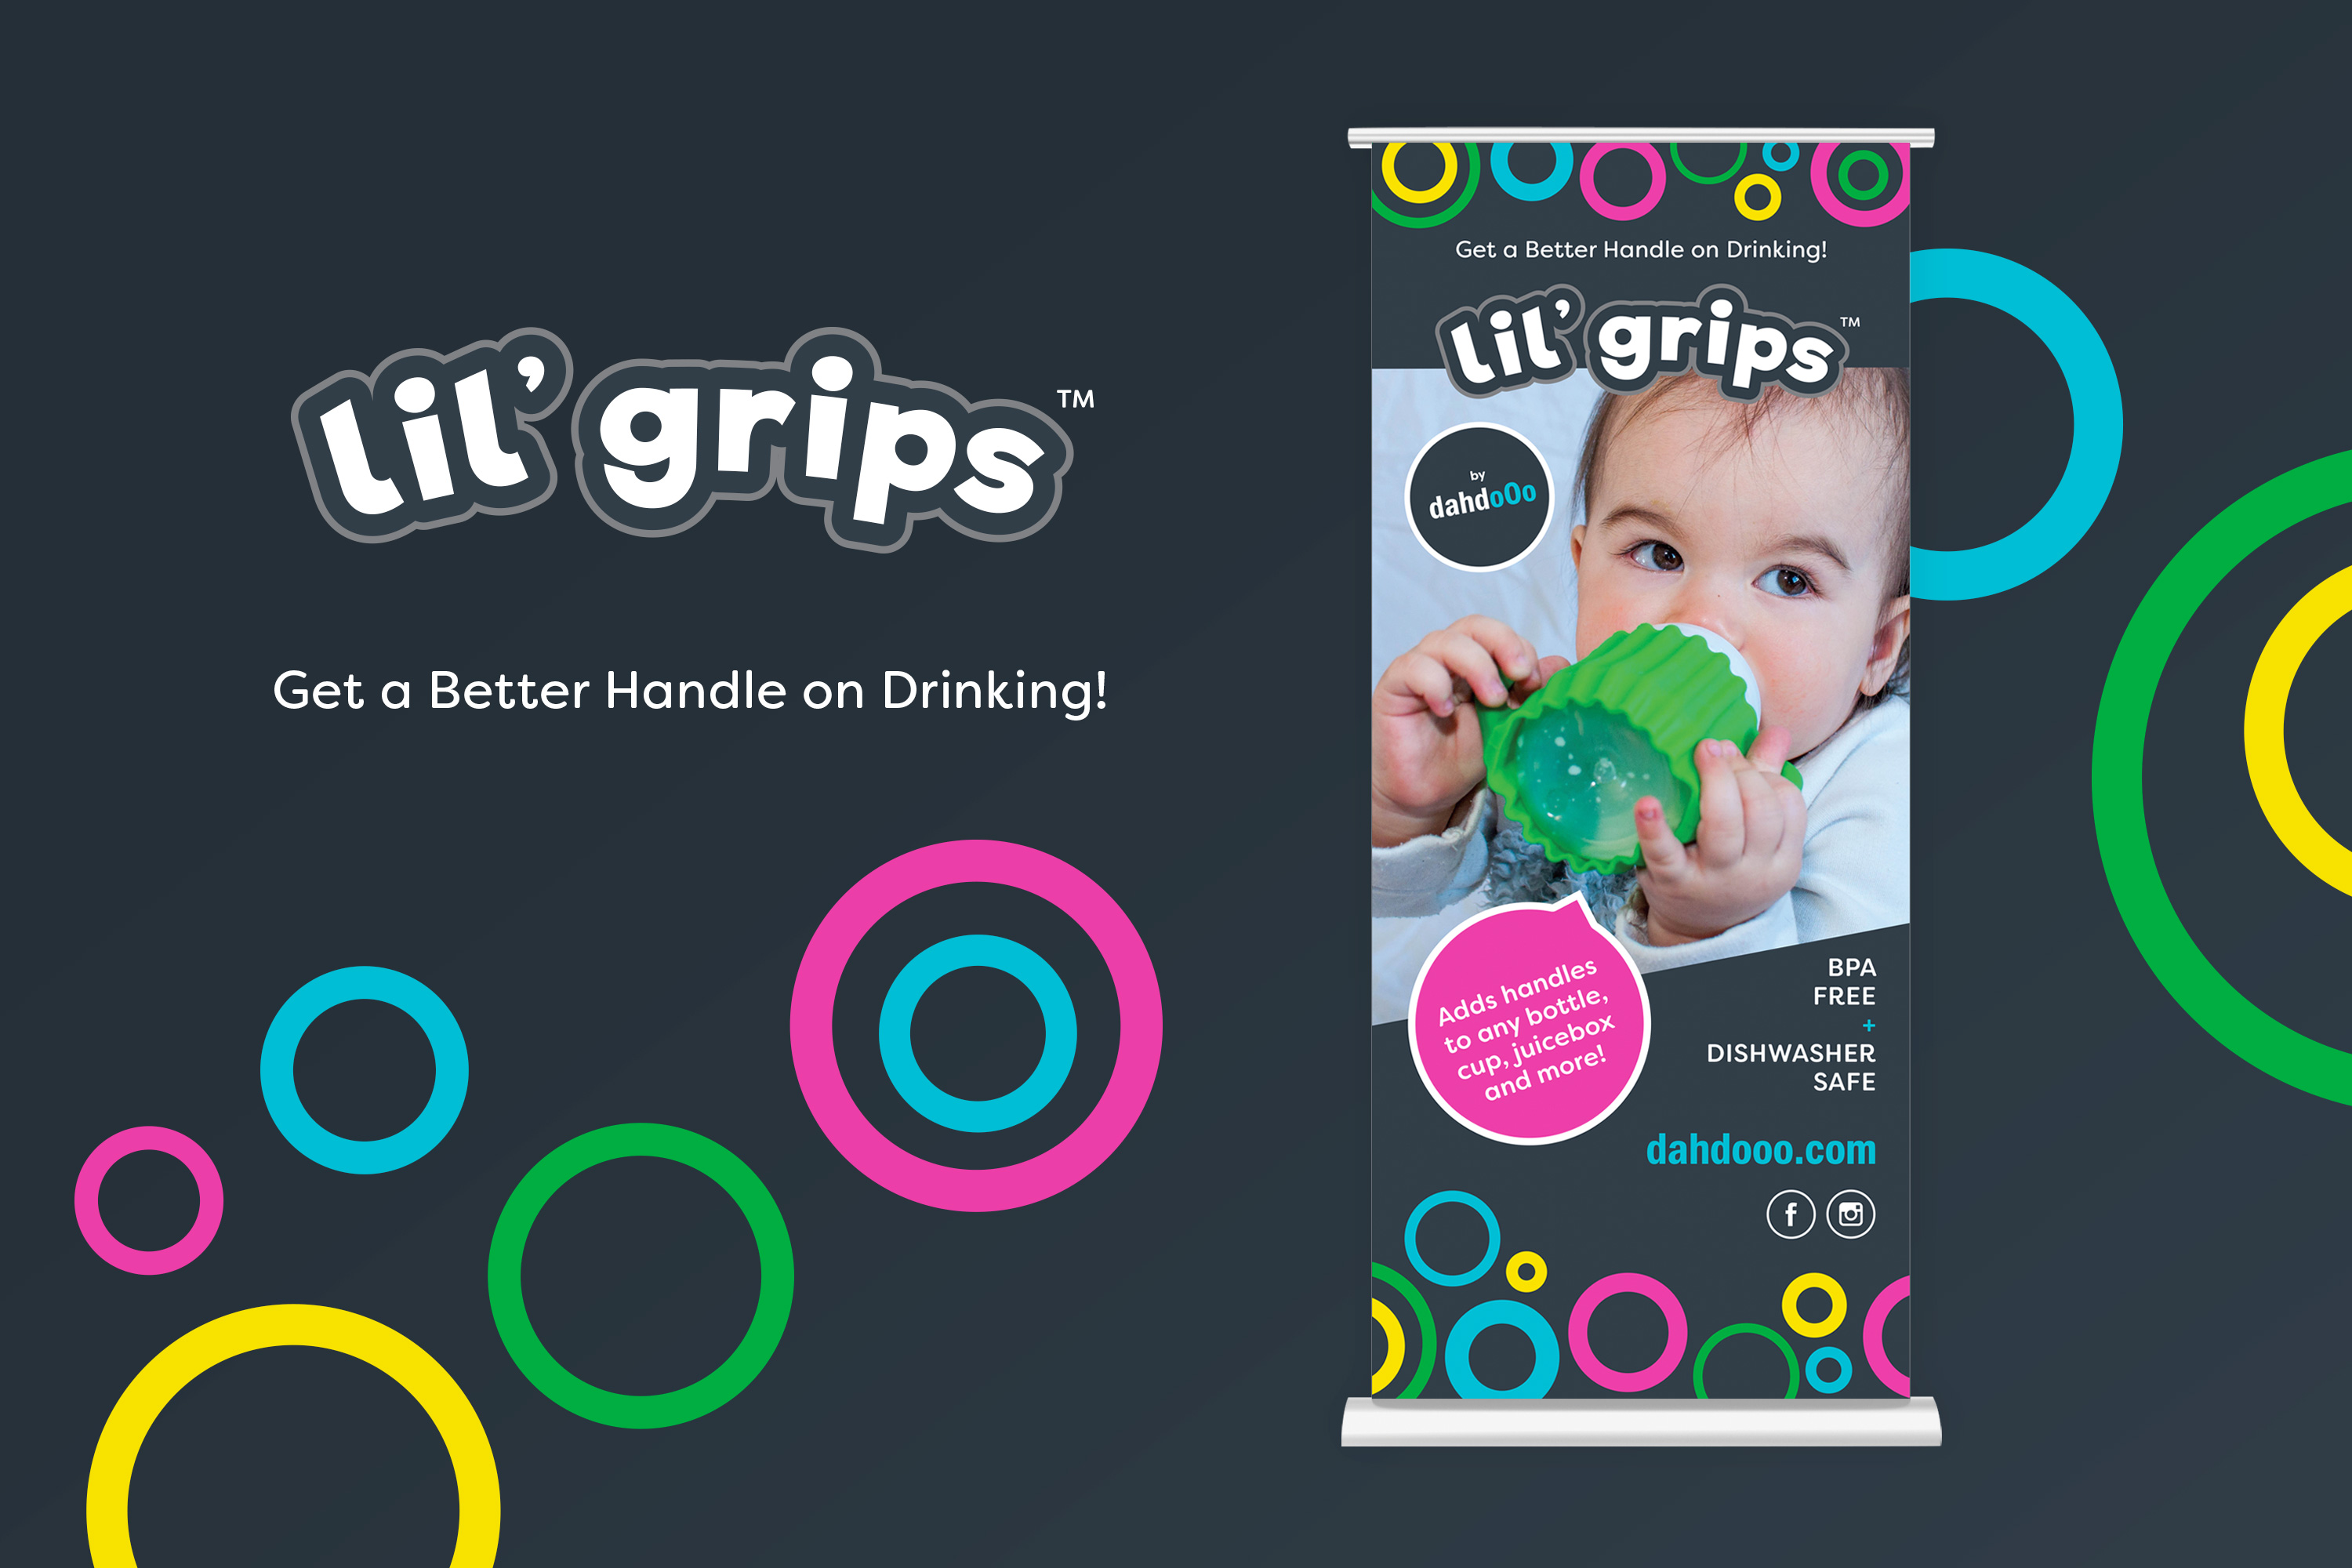 Lil' grips logo and roll-up banner design